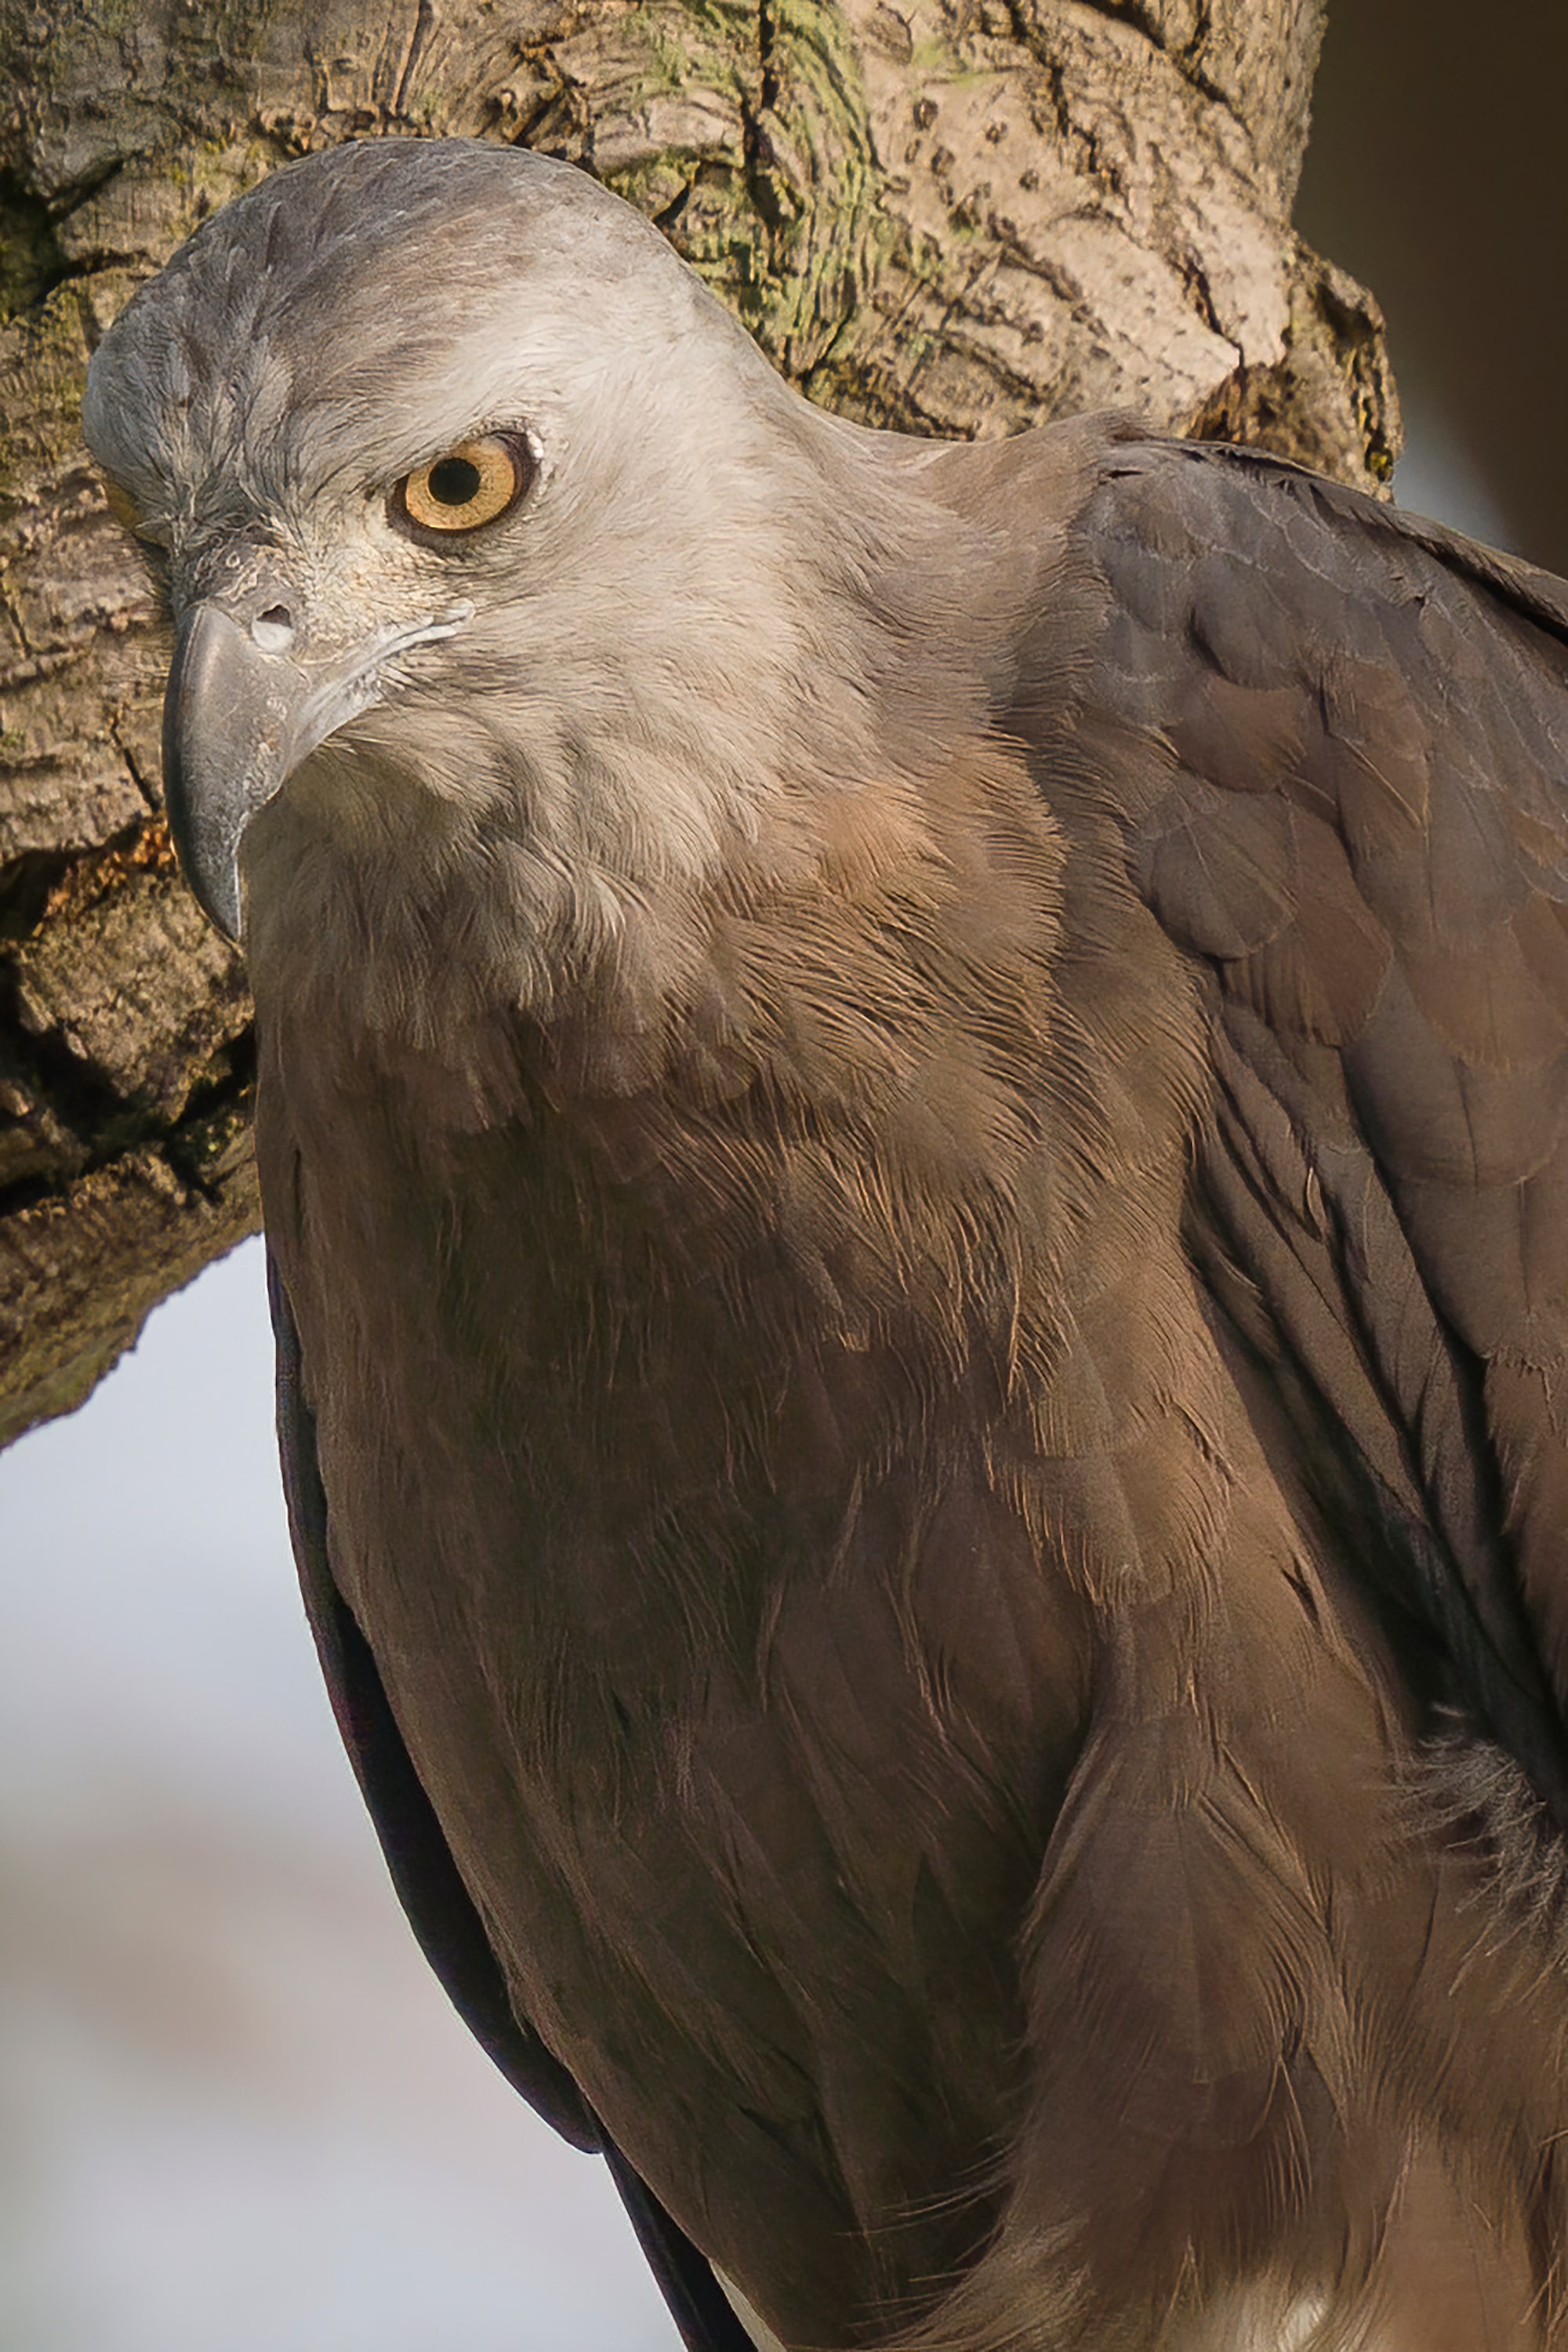 Sony Alpha 7R IV's Real-time Eye Tracking with animal eye locks on Grey-Headed Fish Eagle on branch.